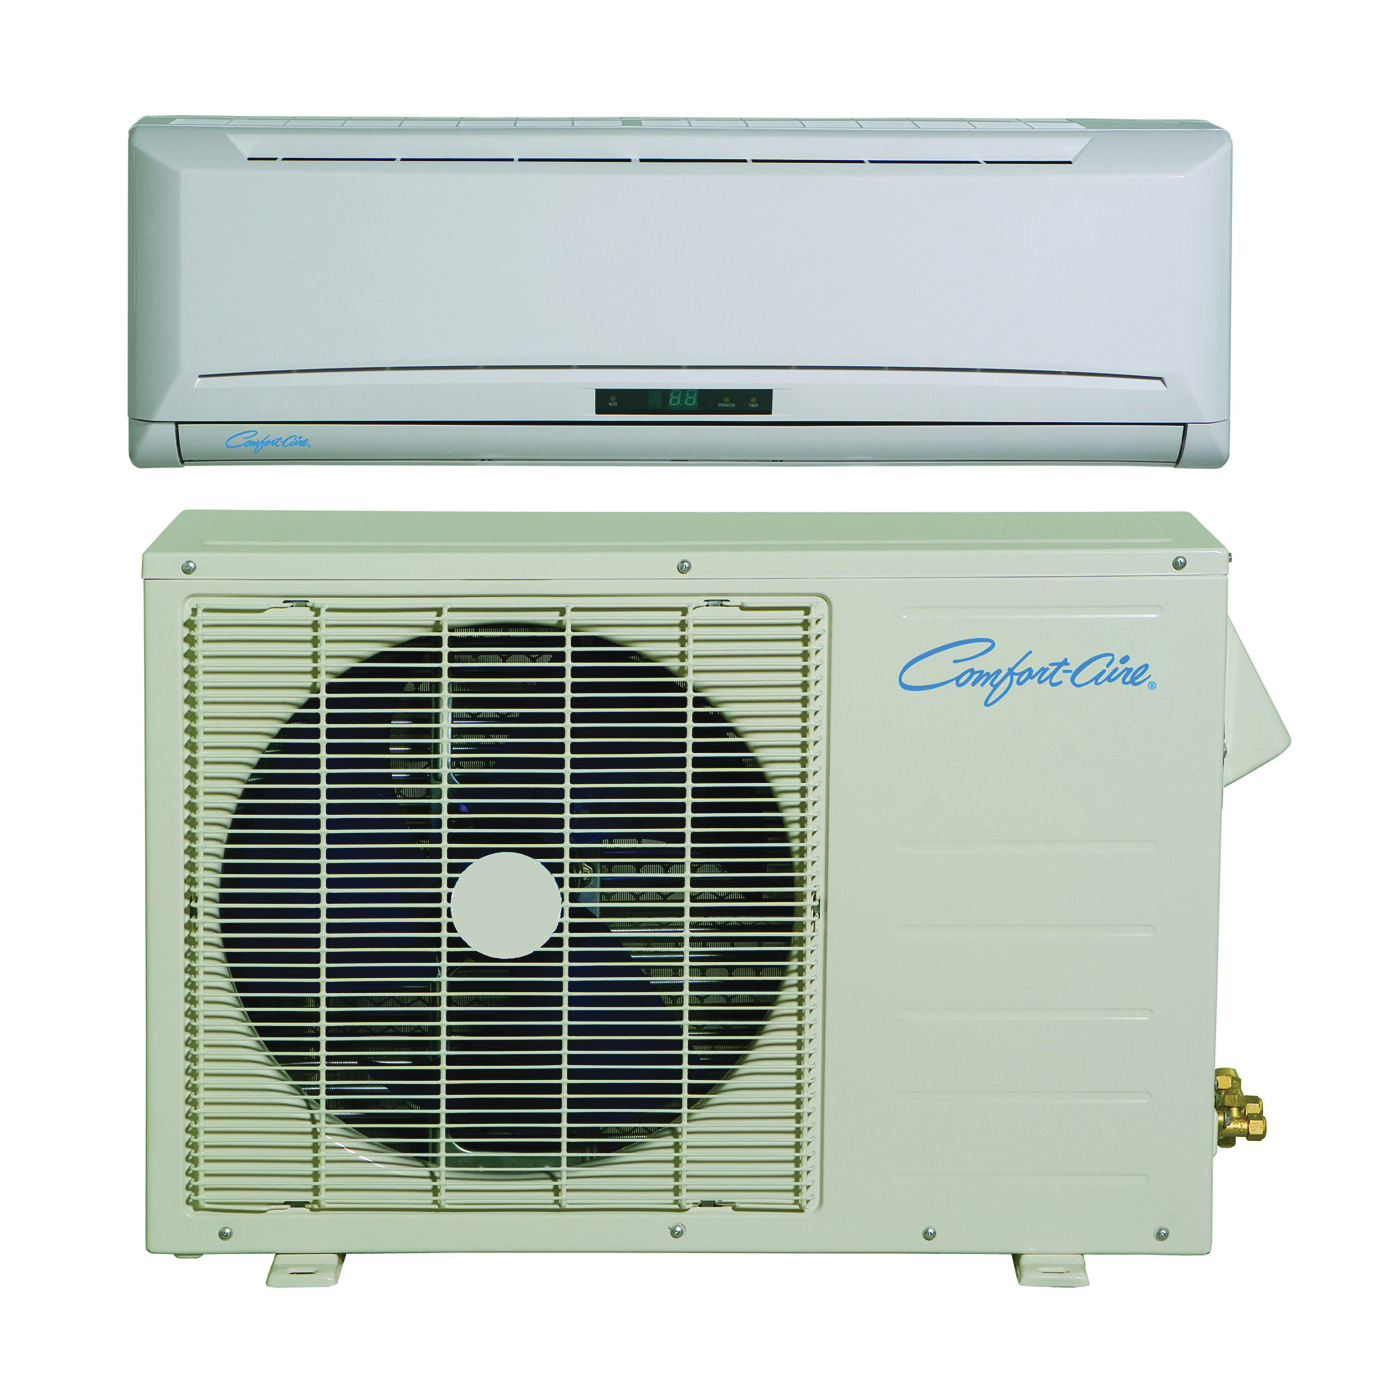 Picture of Comfort-Aire SMH09SC-0-25-KIT Mini-Split Air Conditioner, 115 V, 9000 Btu Cooling, 12.7 EER, Remote Control